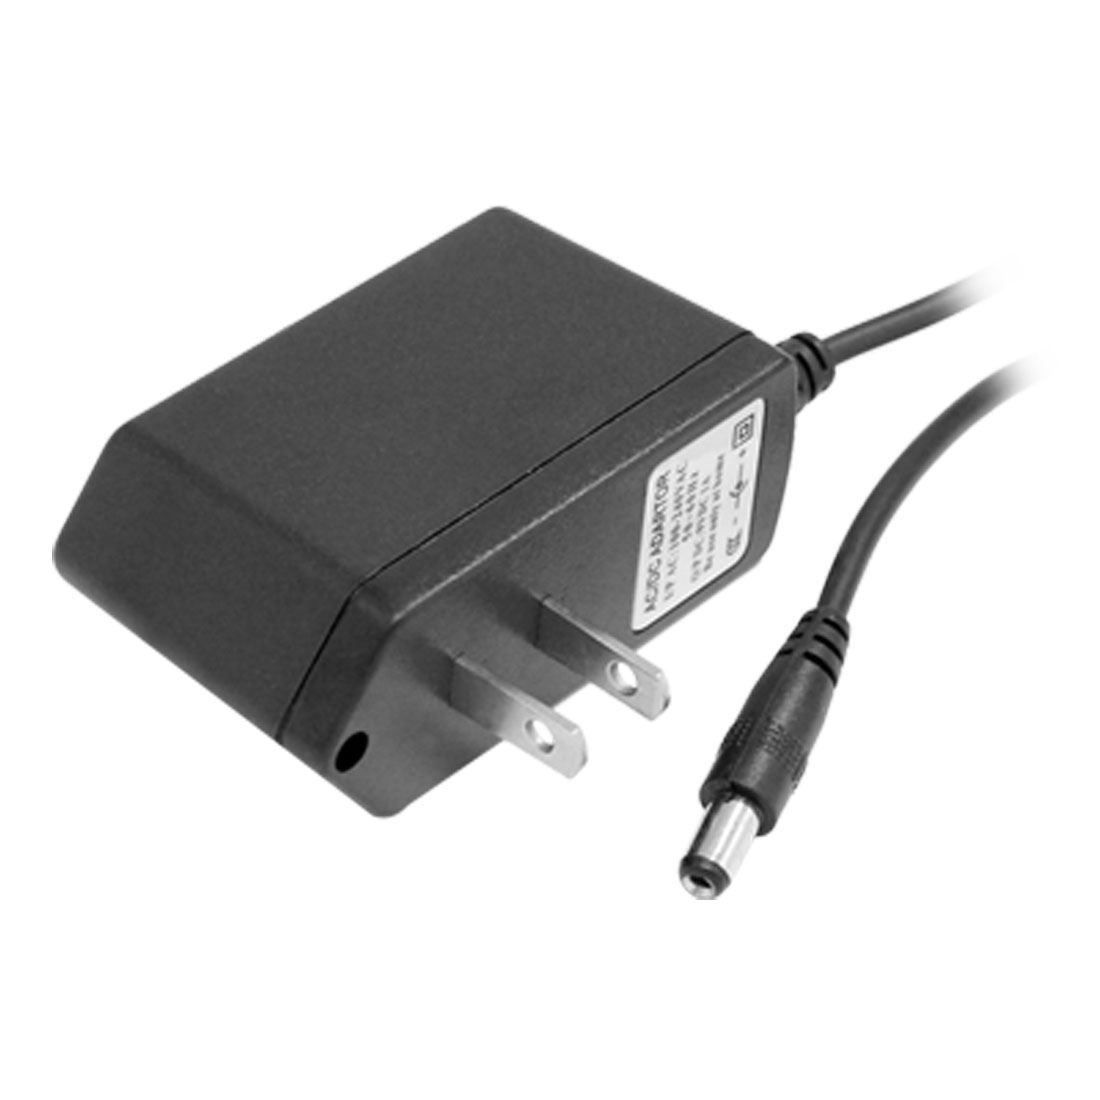 100-240VAC Power Supply Adapter 2 Terminal US Plug for CCTV Camera